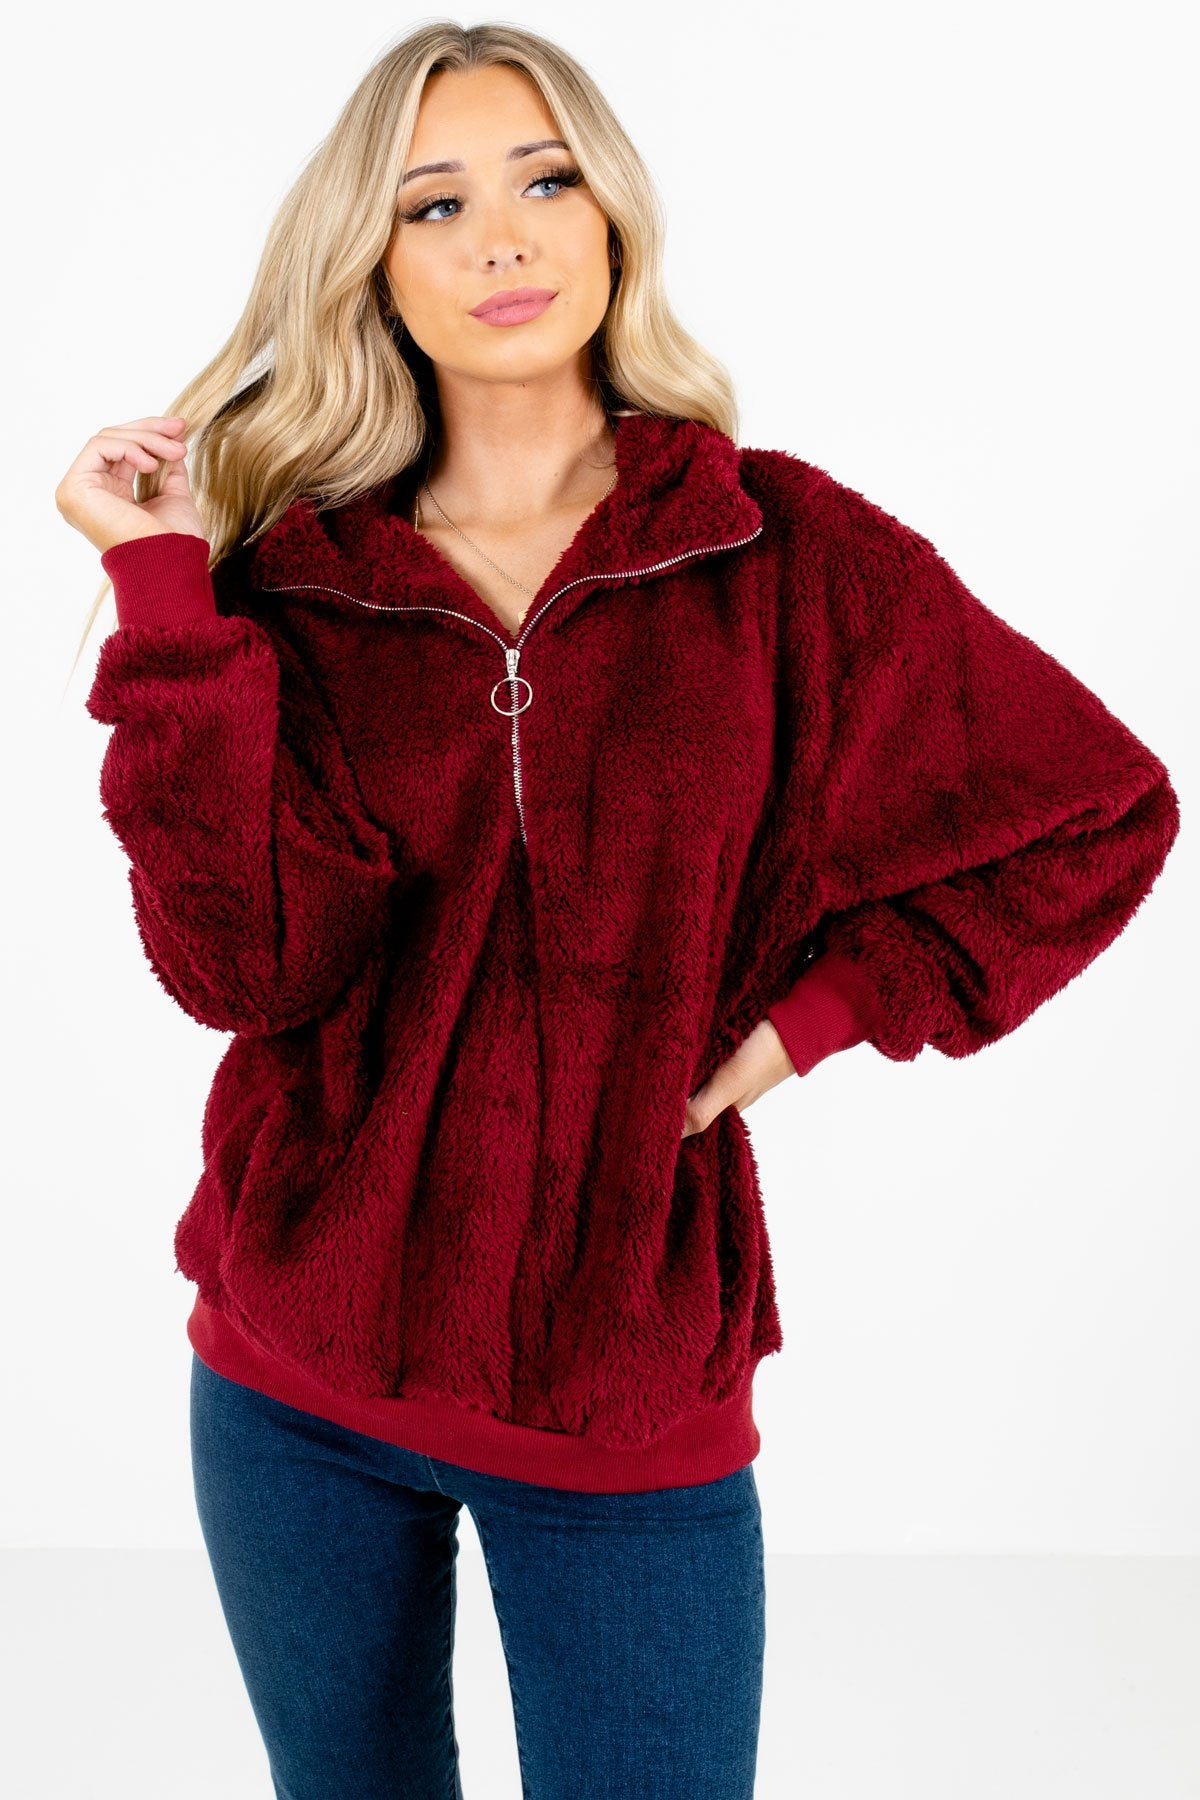 Burgundy High-Quality Fuzzy Material Boutique Pullovers for Women